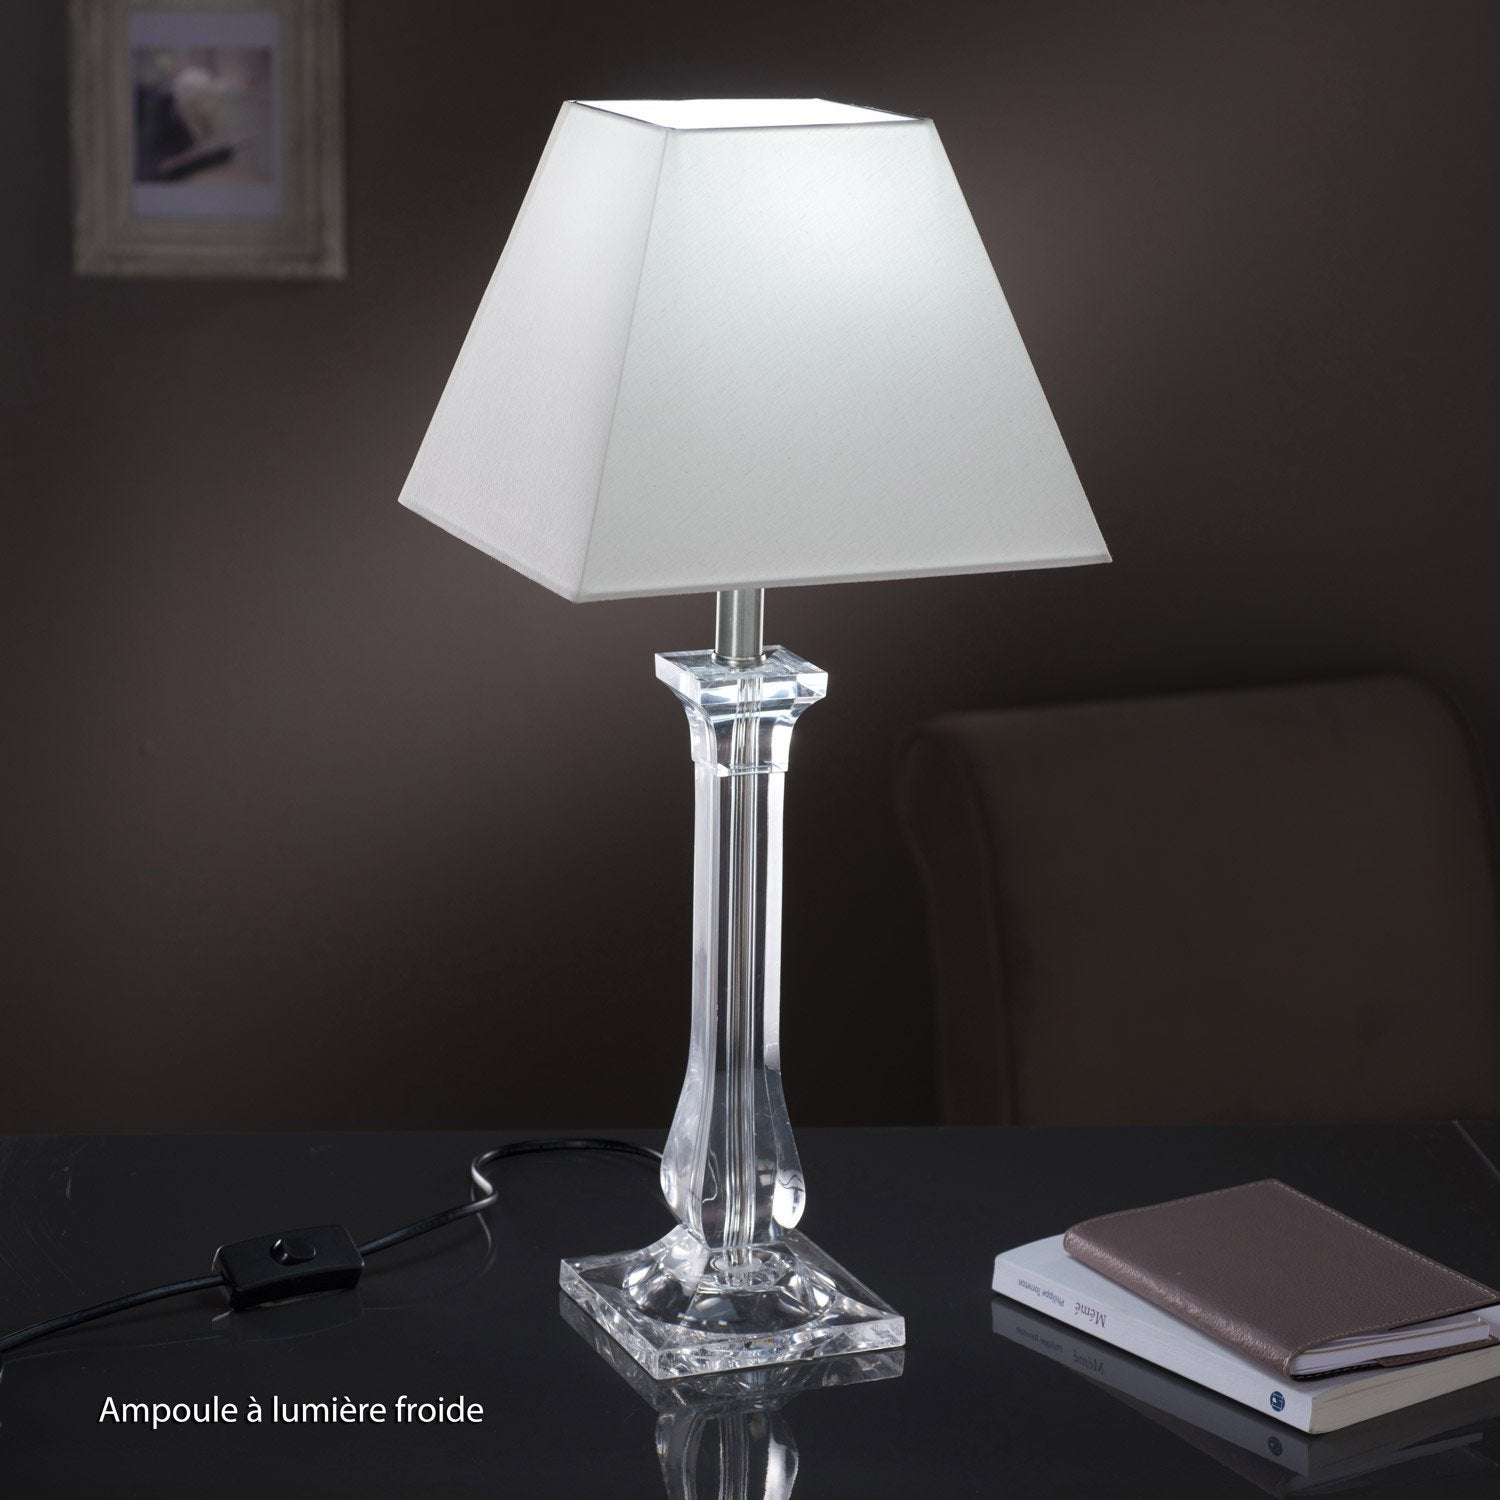 Pied de lampe fantasy acrylique transparent 39 cm for Lampe de salon design sur pied